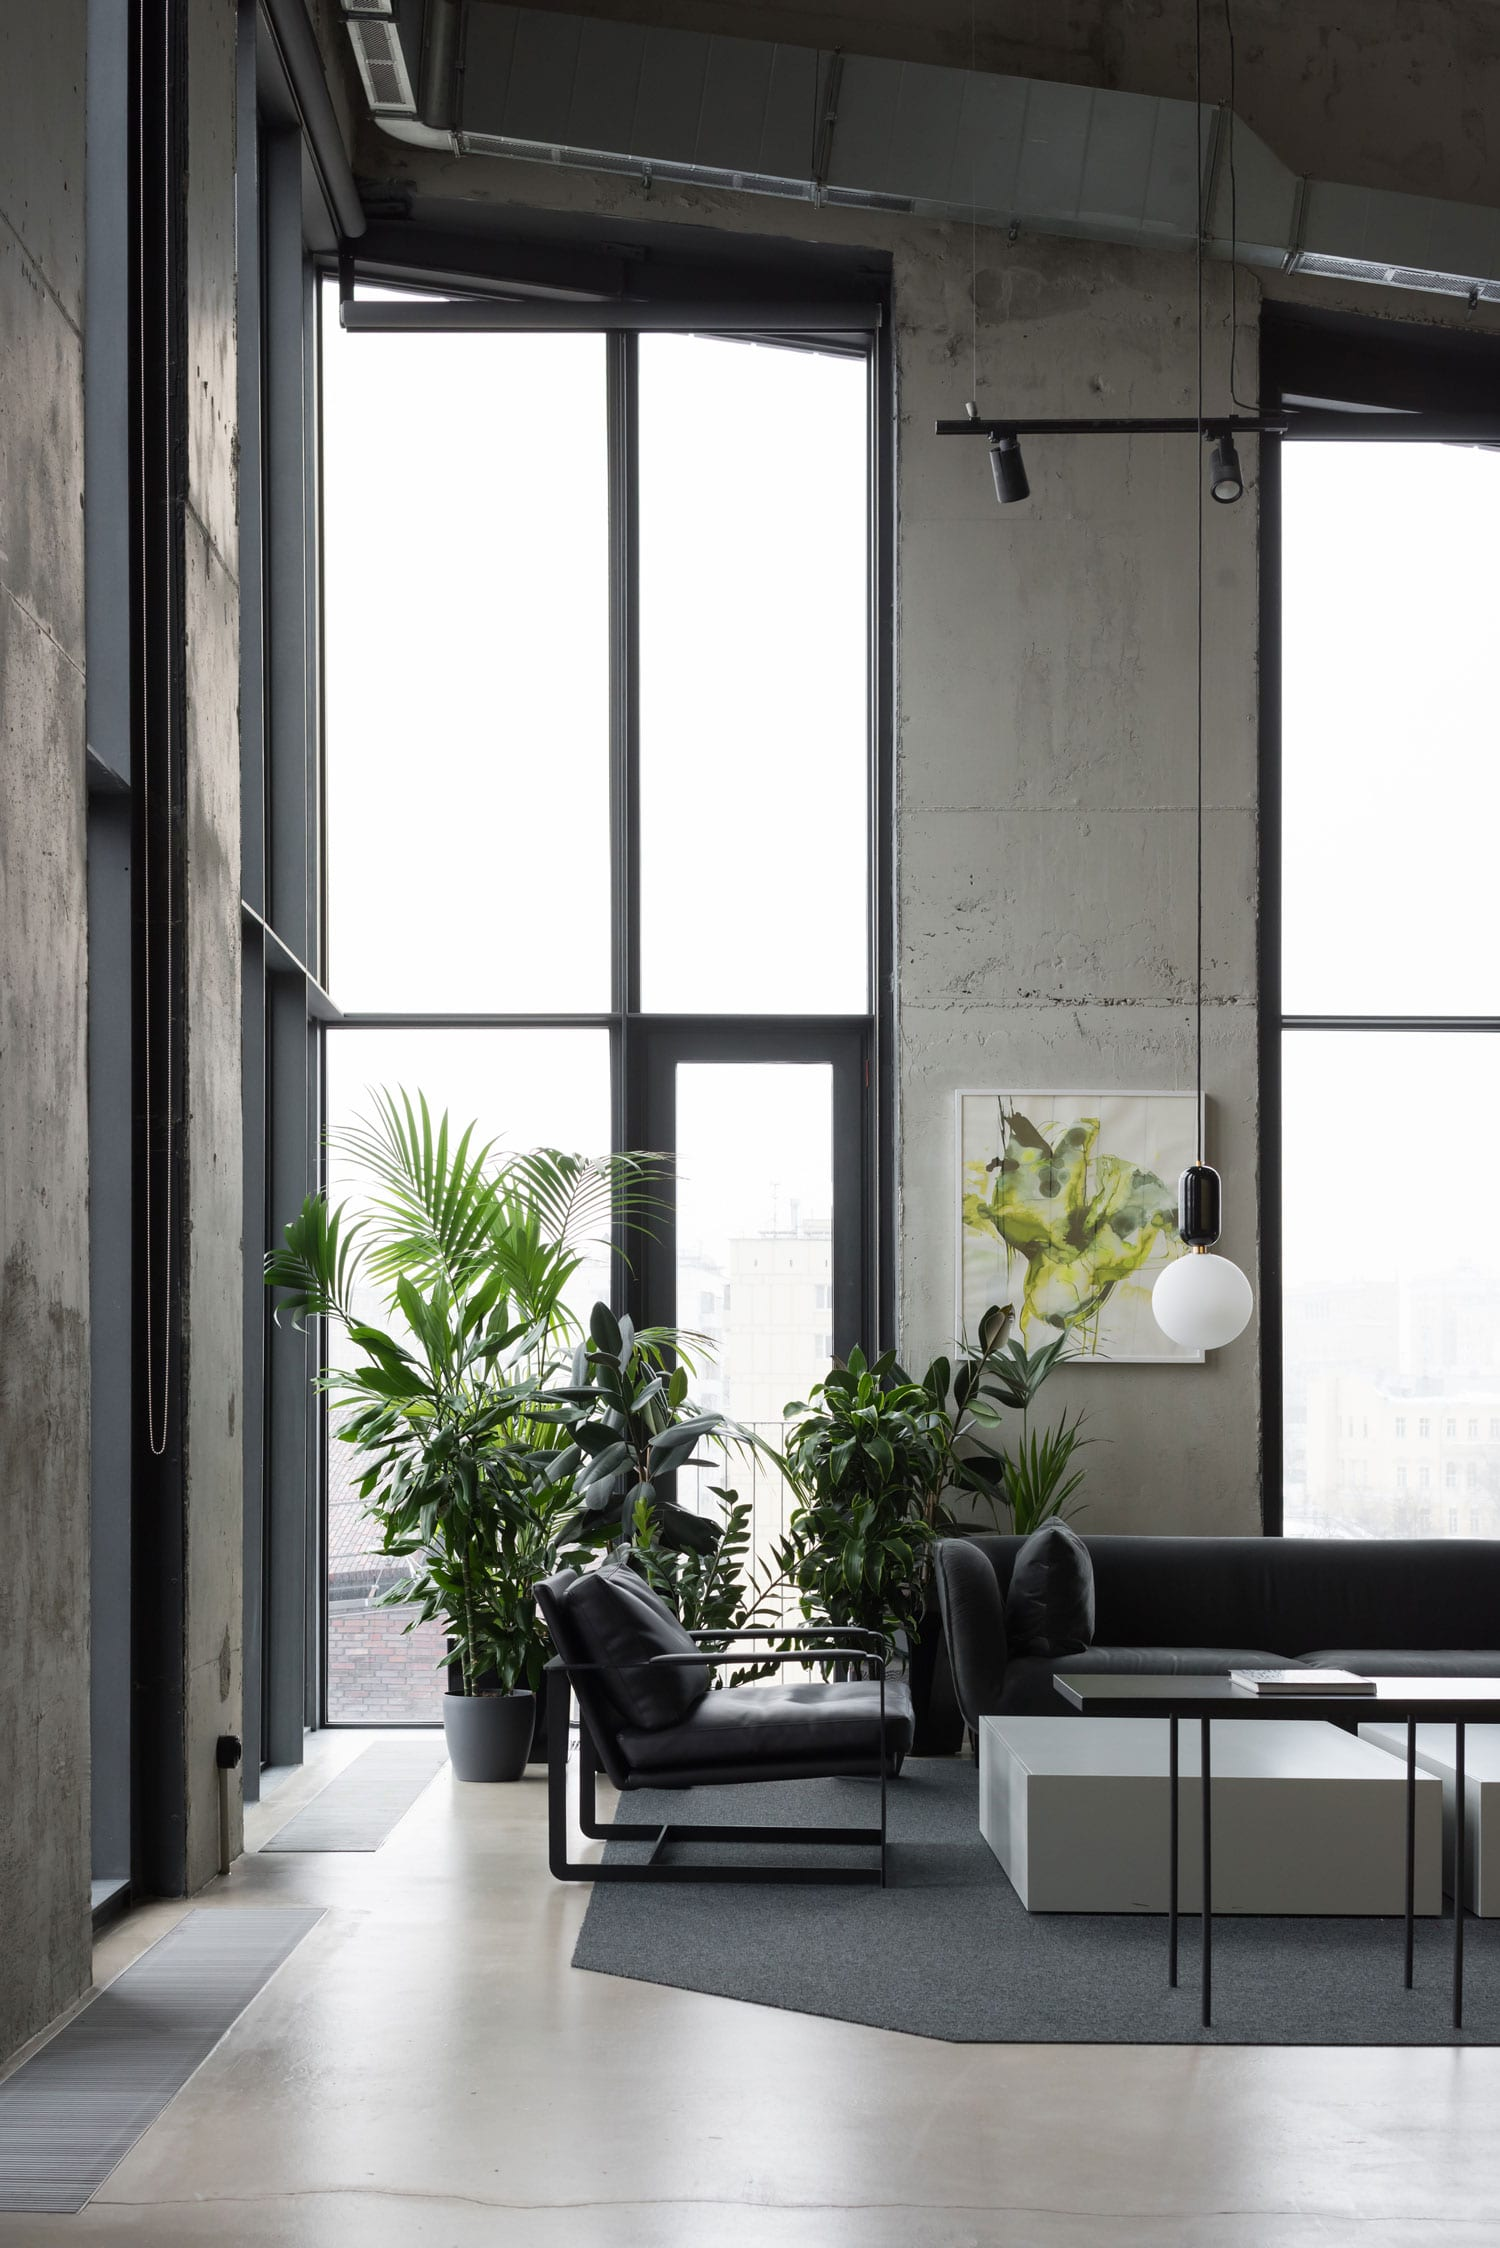 Residential Sales Office in Moscow, Russia by Alexander Volkov Architects | Yellowtrace